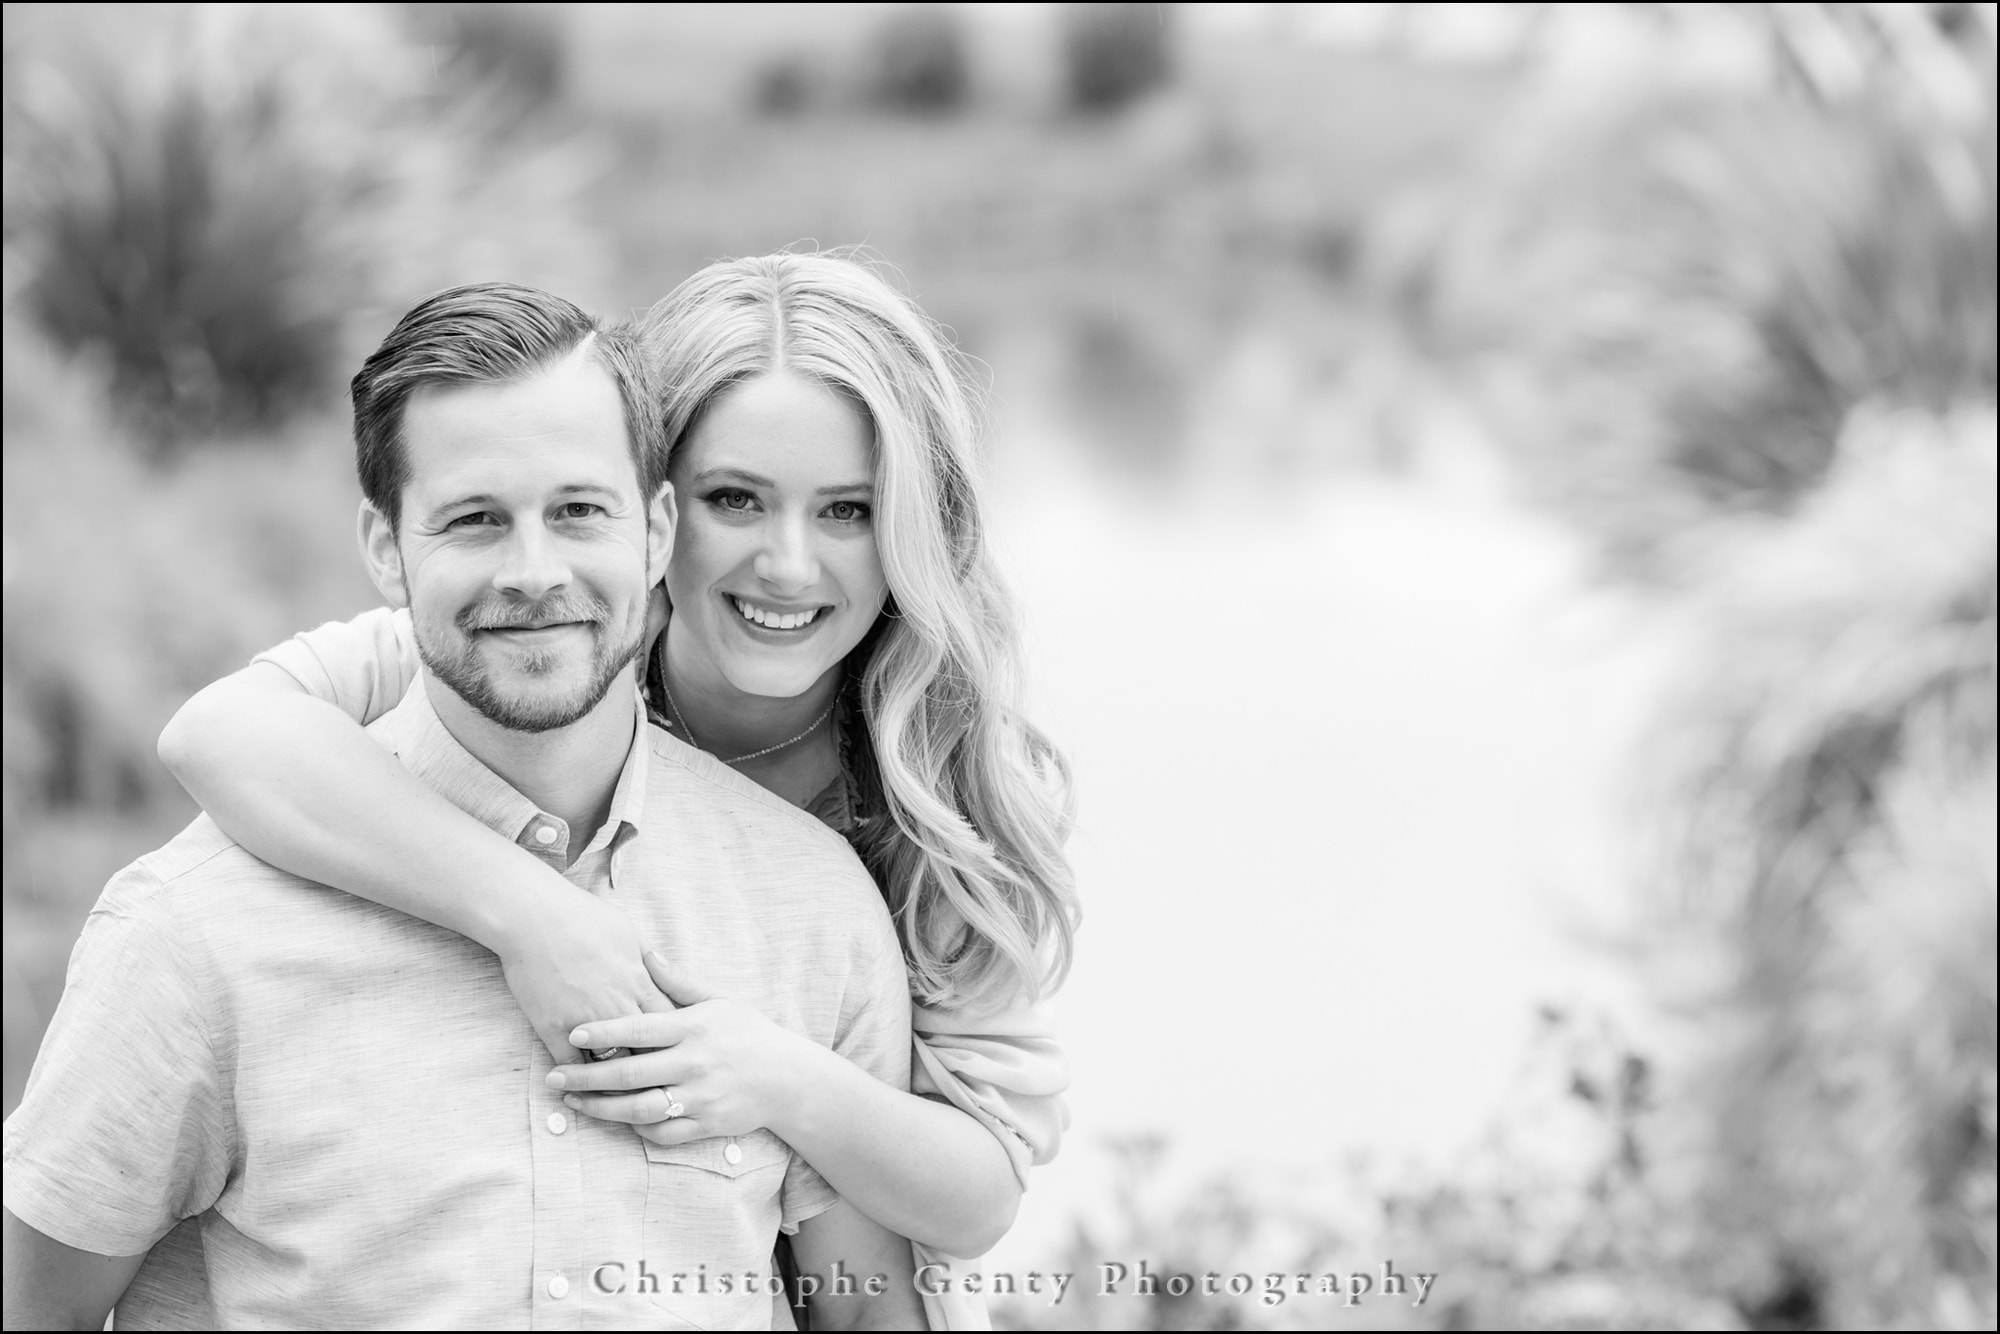 Engagement Photography at Castello Di Amorosa - Calistoga, CA